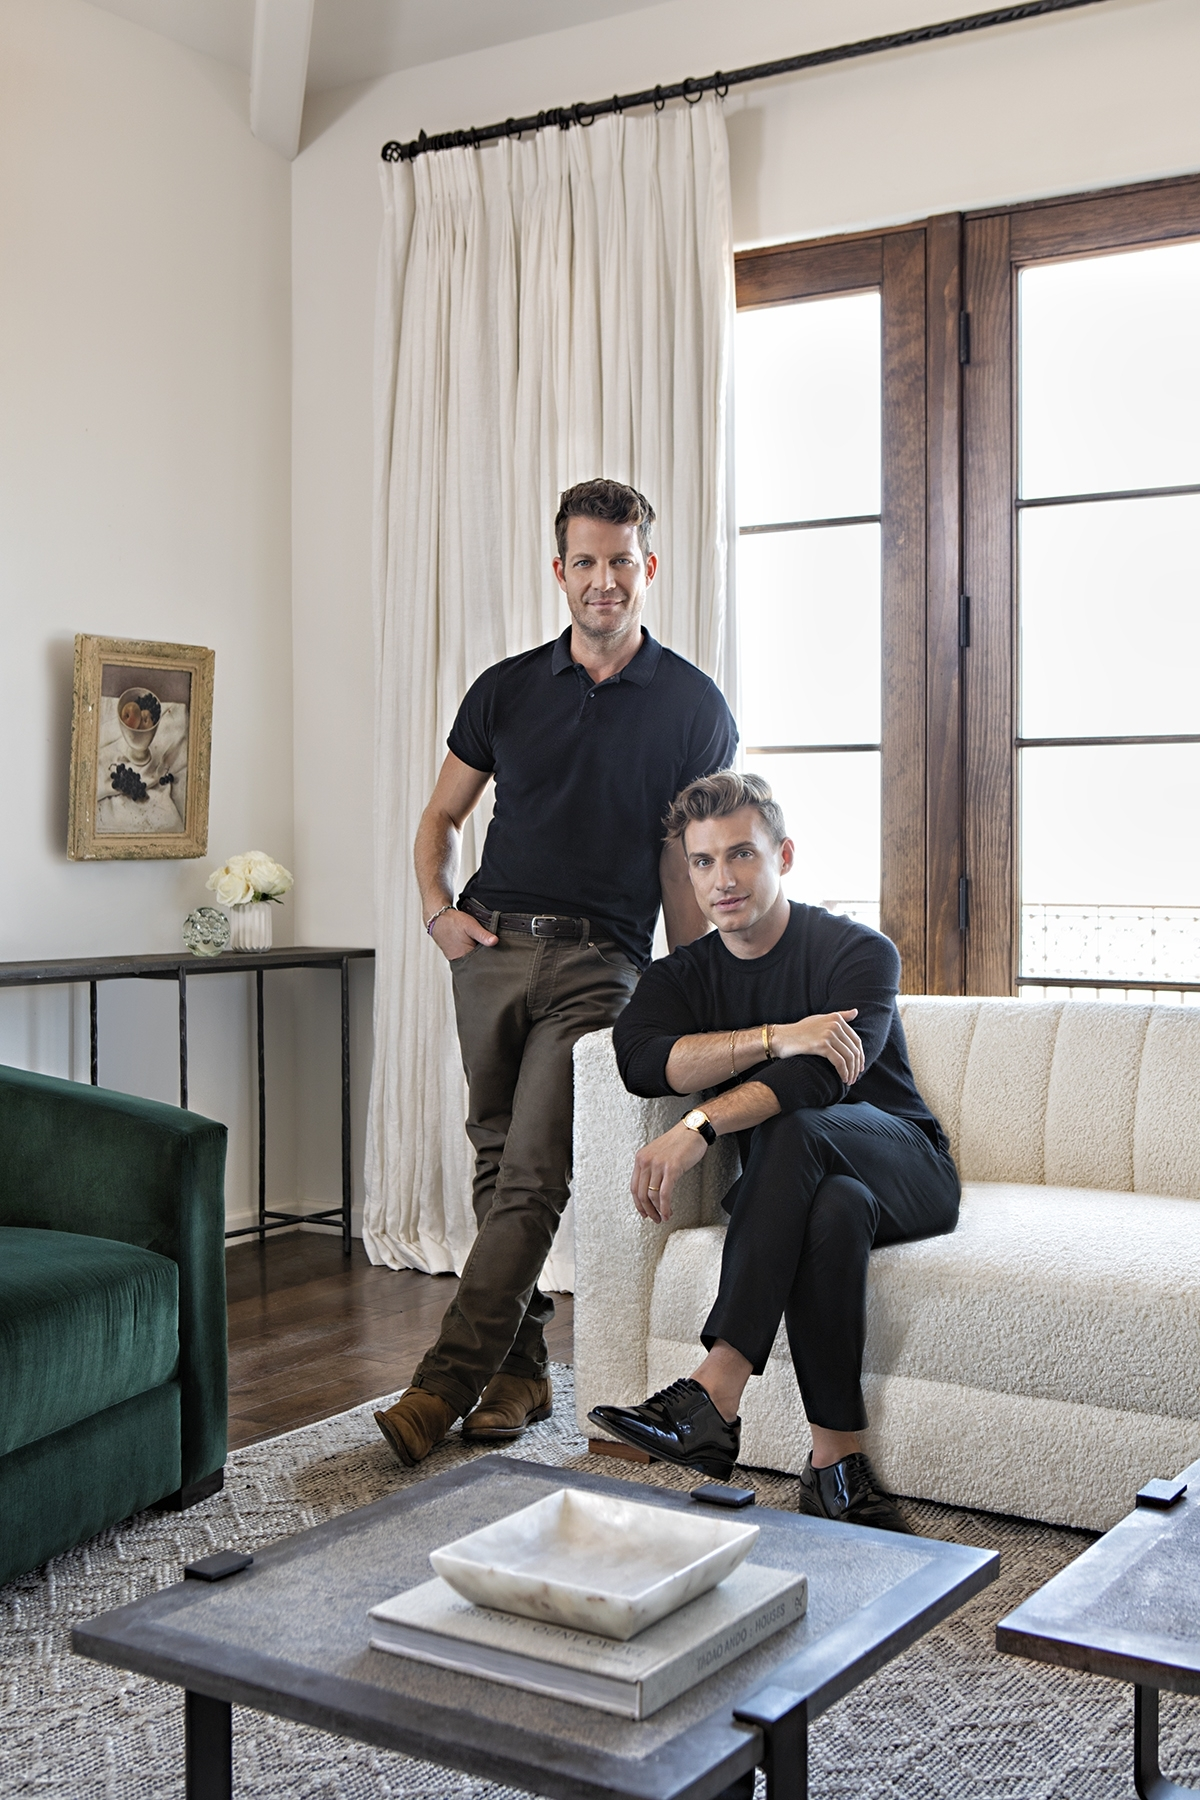 Nate Berkus & Jeremiah Brent's Newest Affordable Collection | Rue throughout Whitley 3 Piece Sectionals by Nate Berkus and Jeremiah Brent (Image 15 of 32)